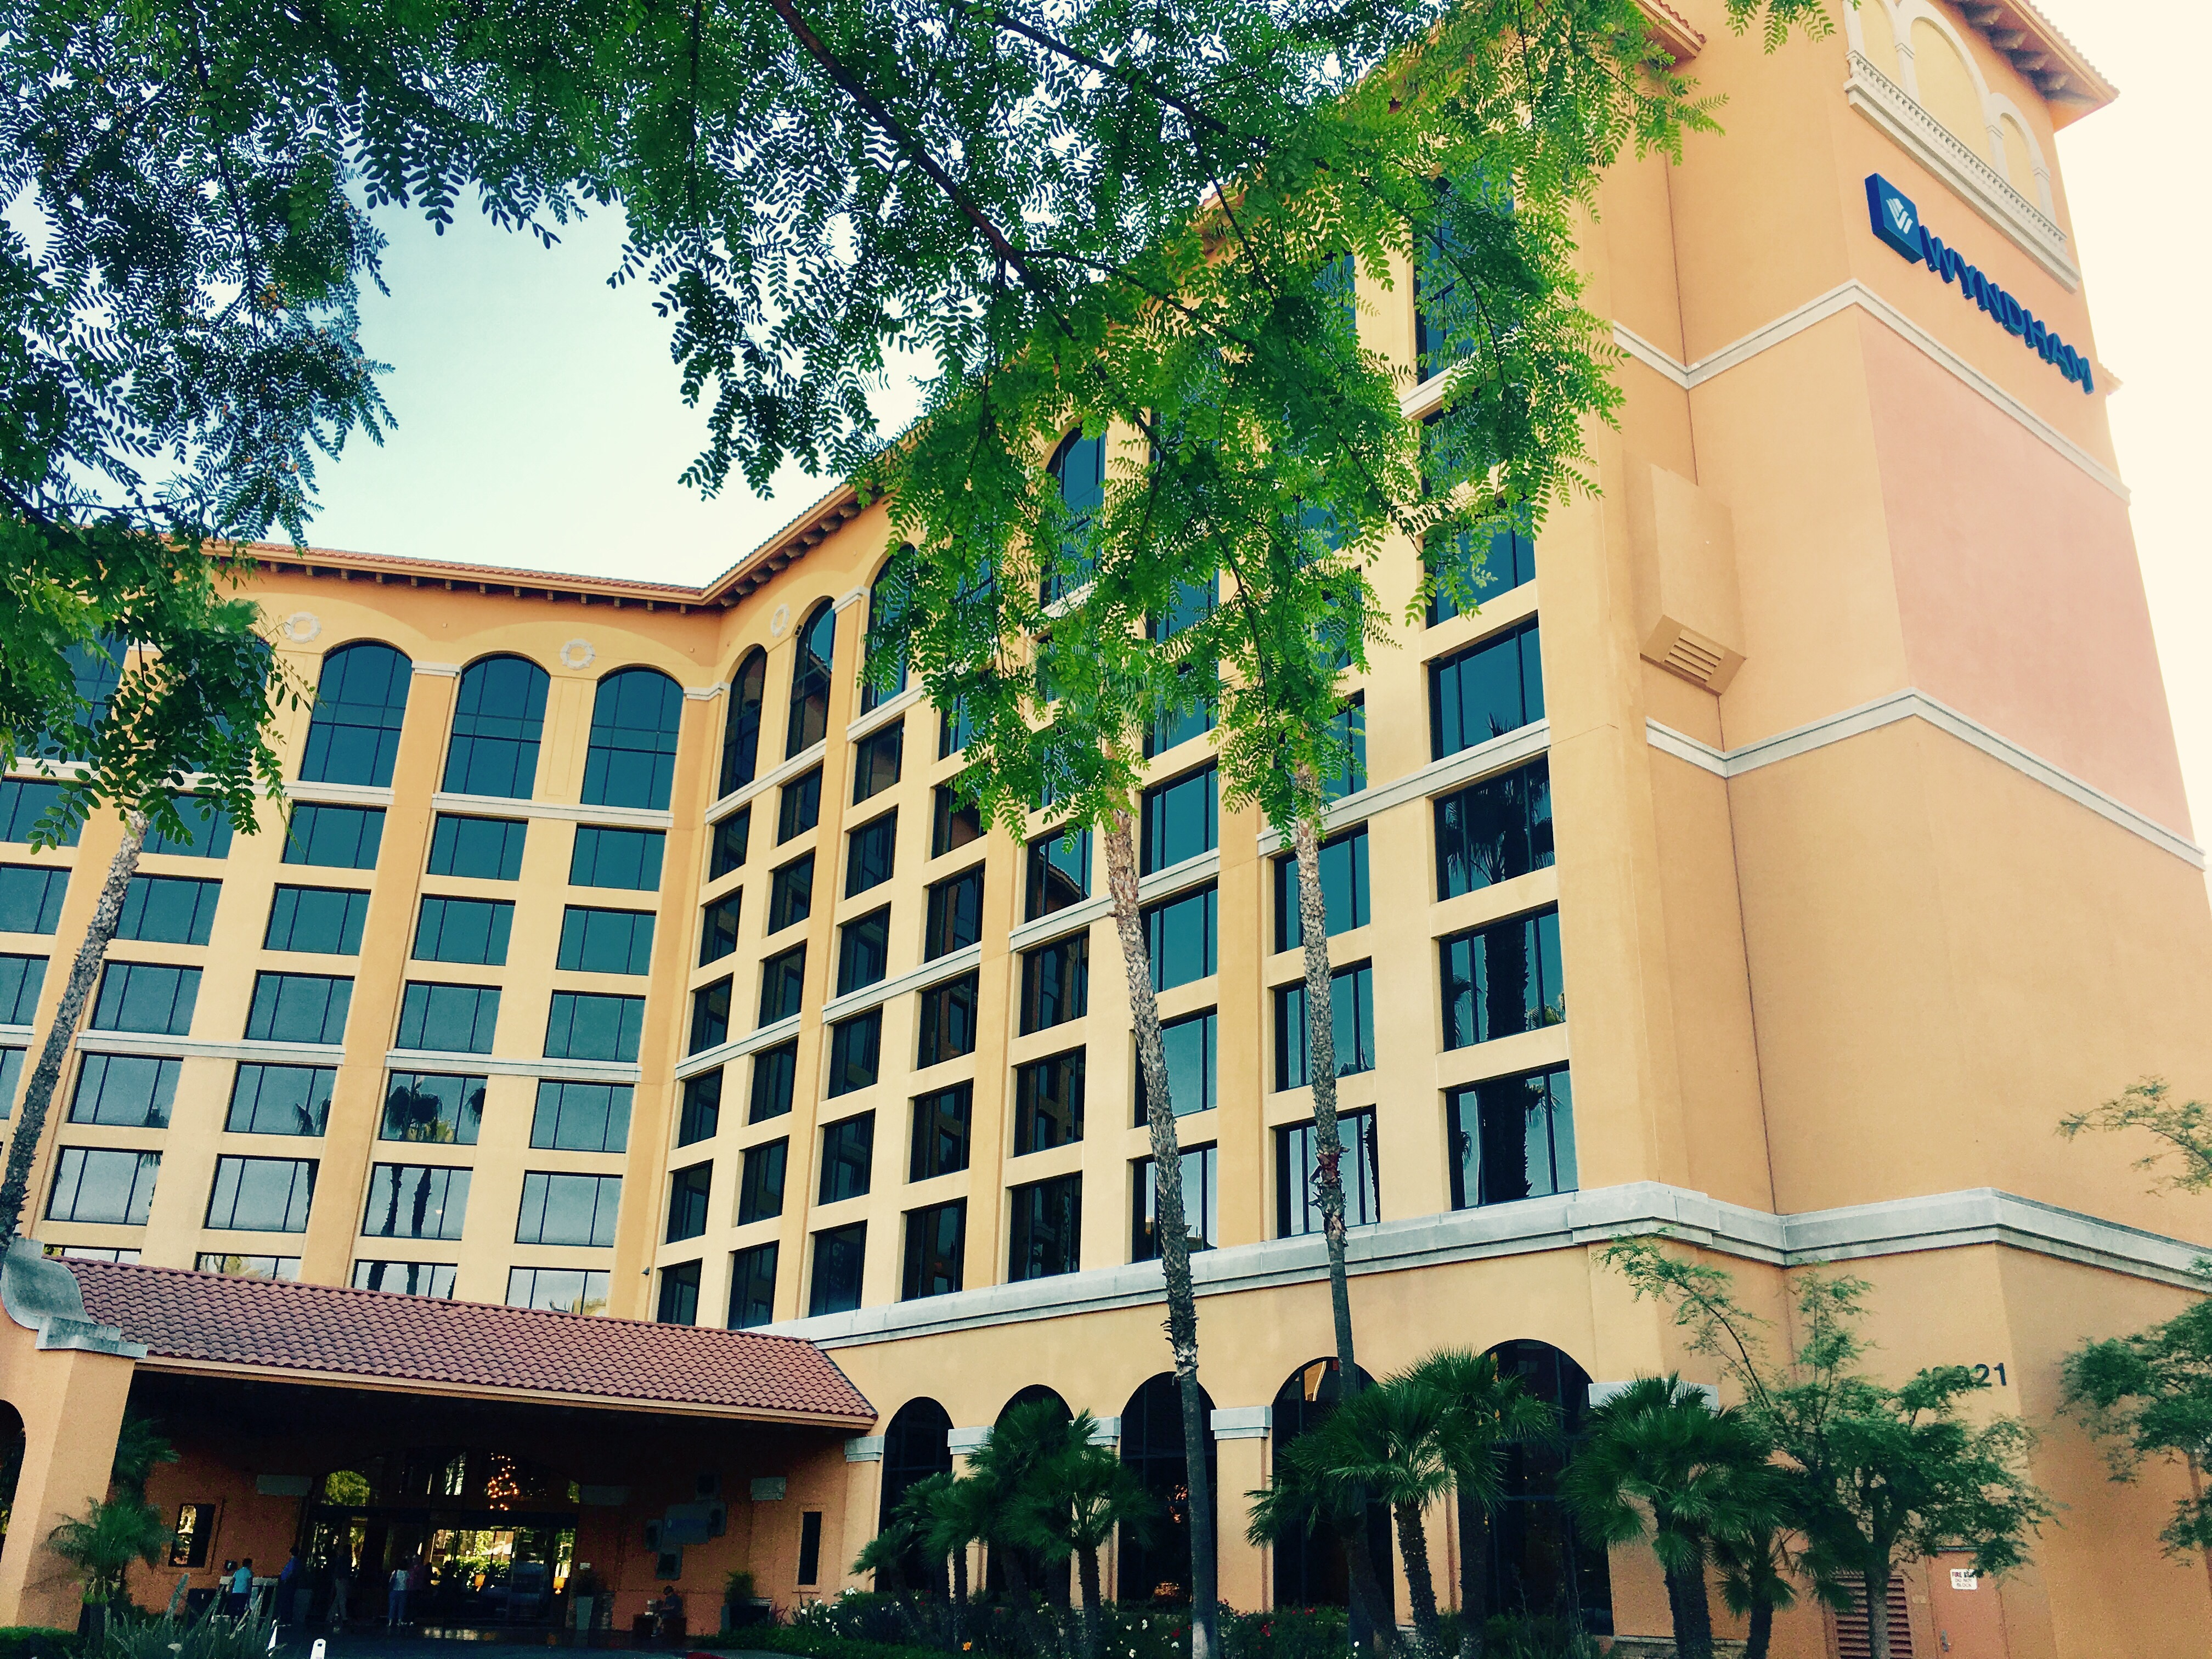 Off Site Hotels at Disneyland | Disneyland Daily